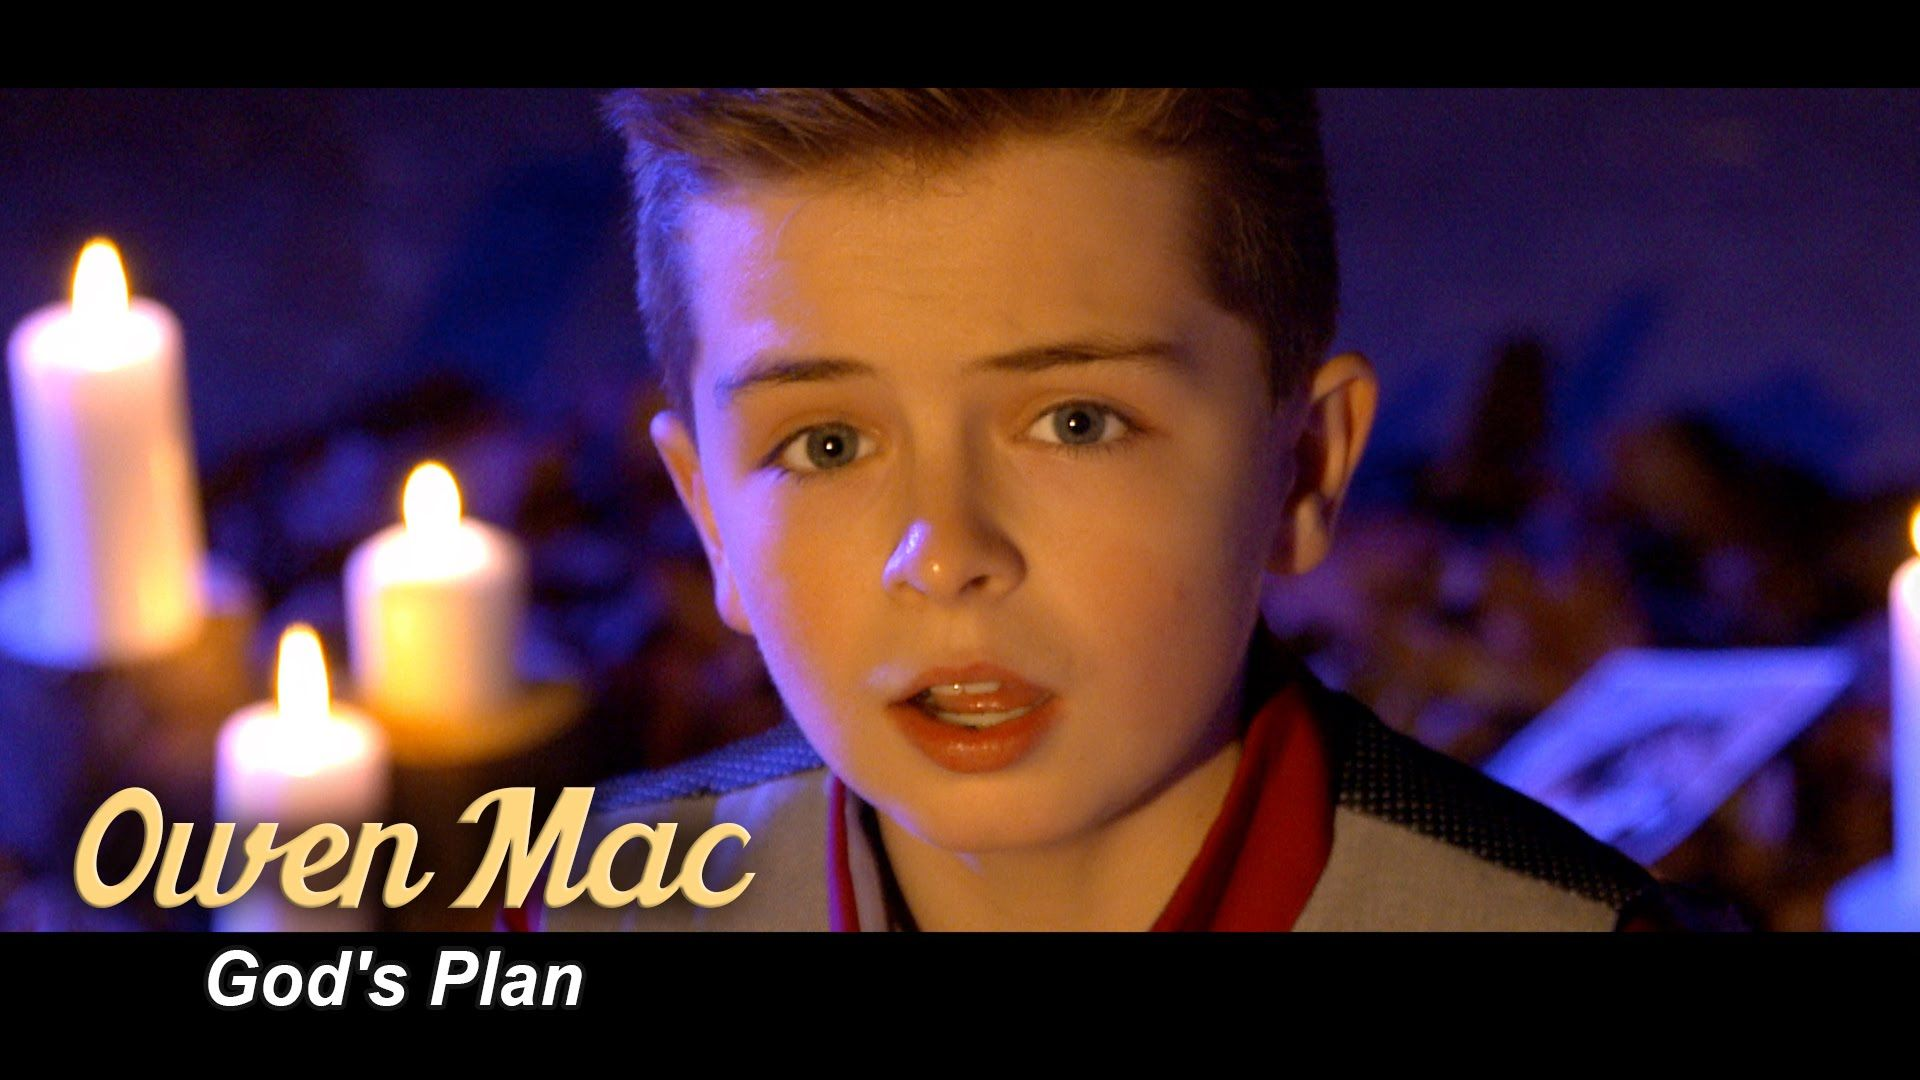 This is the new video from Owen Mac singing God's Plan